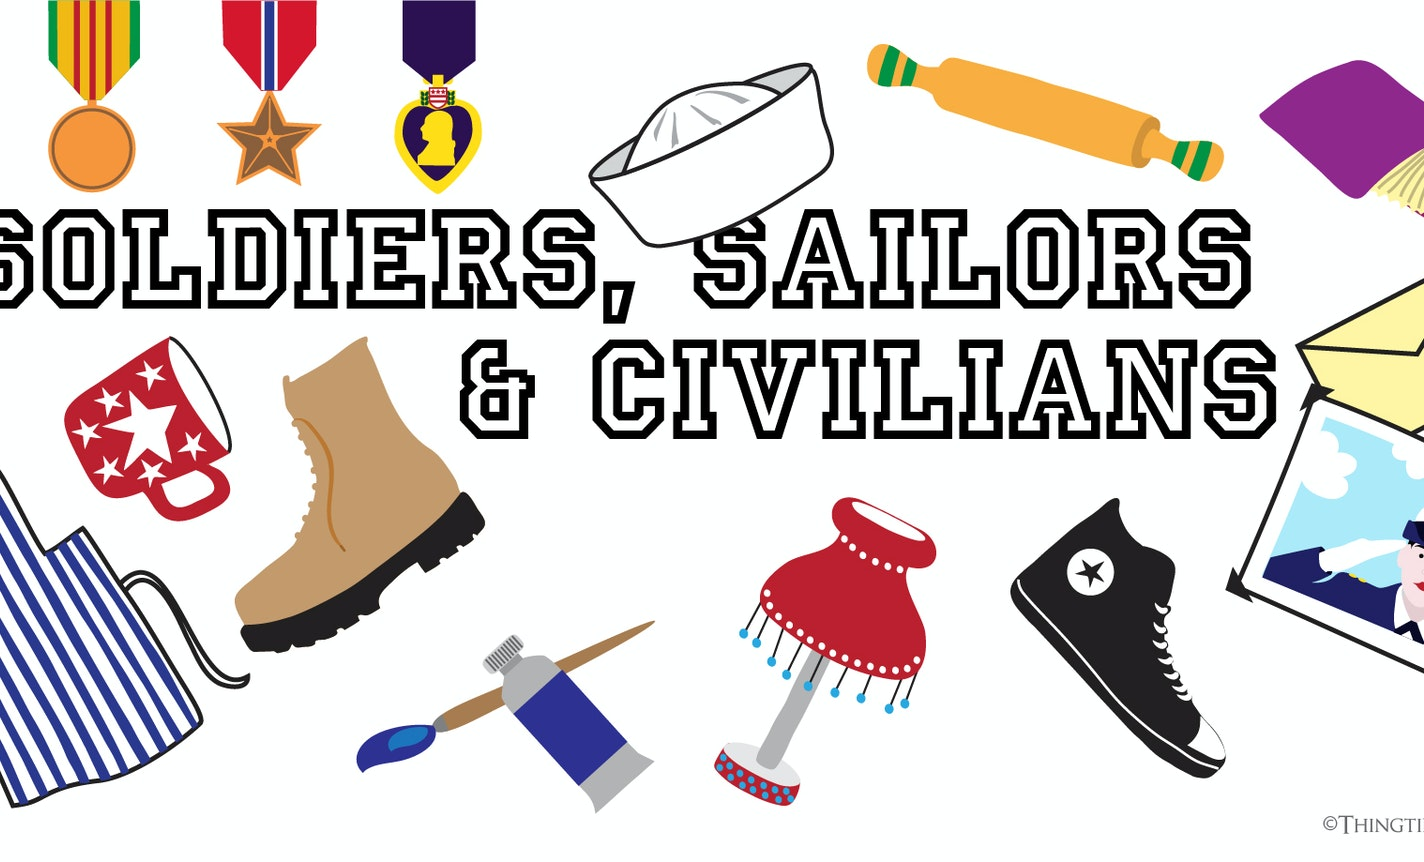 Show & Tale: Soldiers, Sailors & Civilians